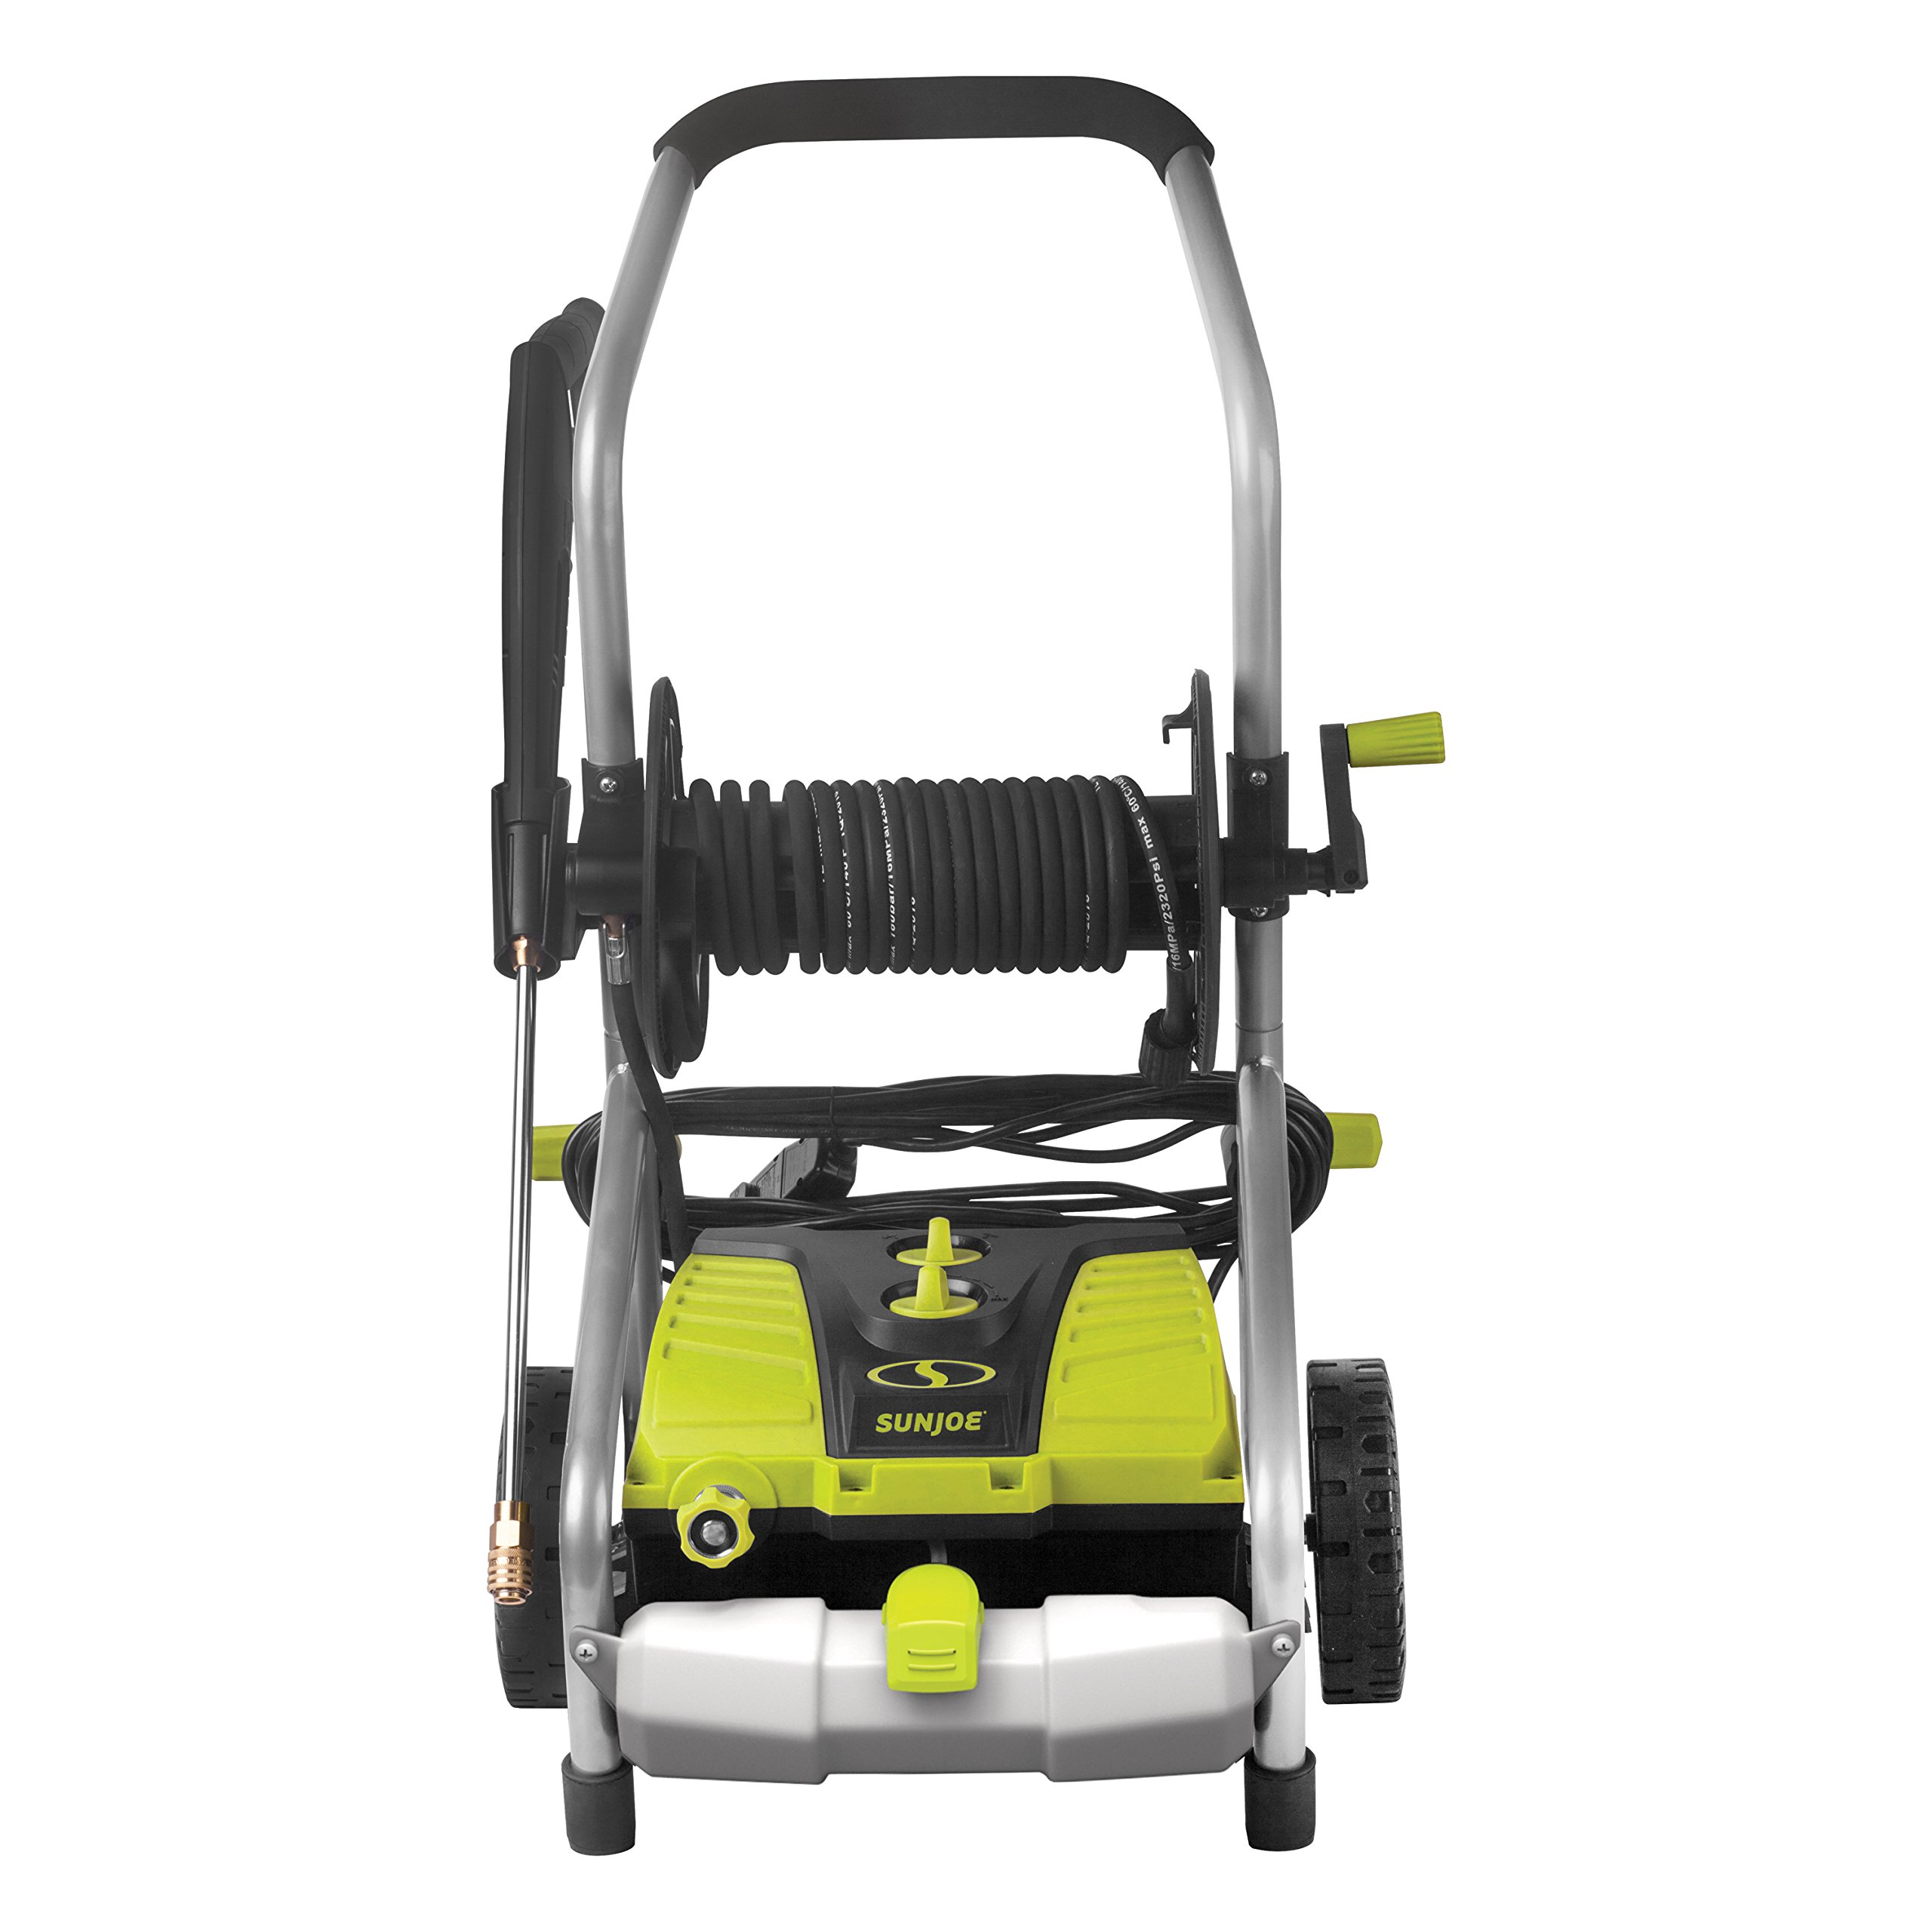 Sun Joe SPX4001 2030 PSI 1.76 GPM 14.5 Amp Electric Pressure Washer w/ Pressure Select Technology & Hose Reel by Snow Joe